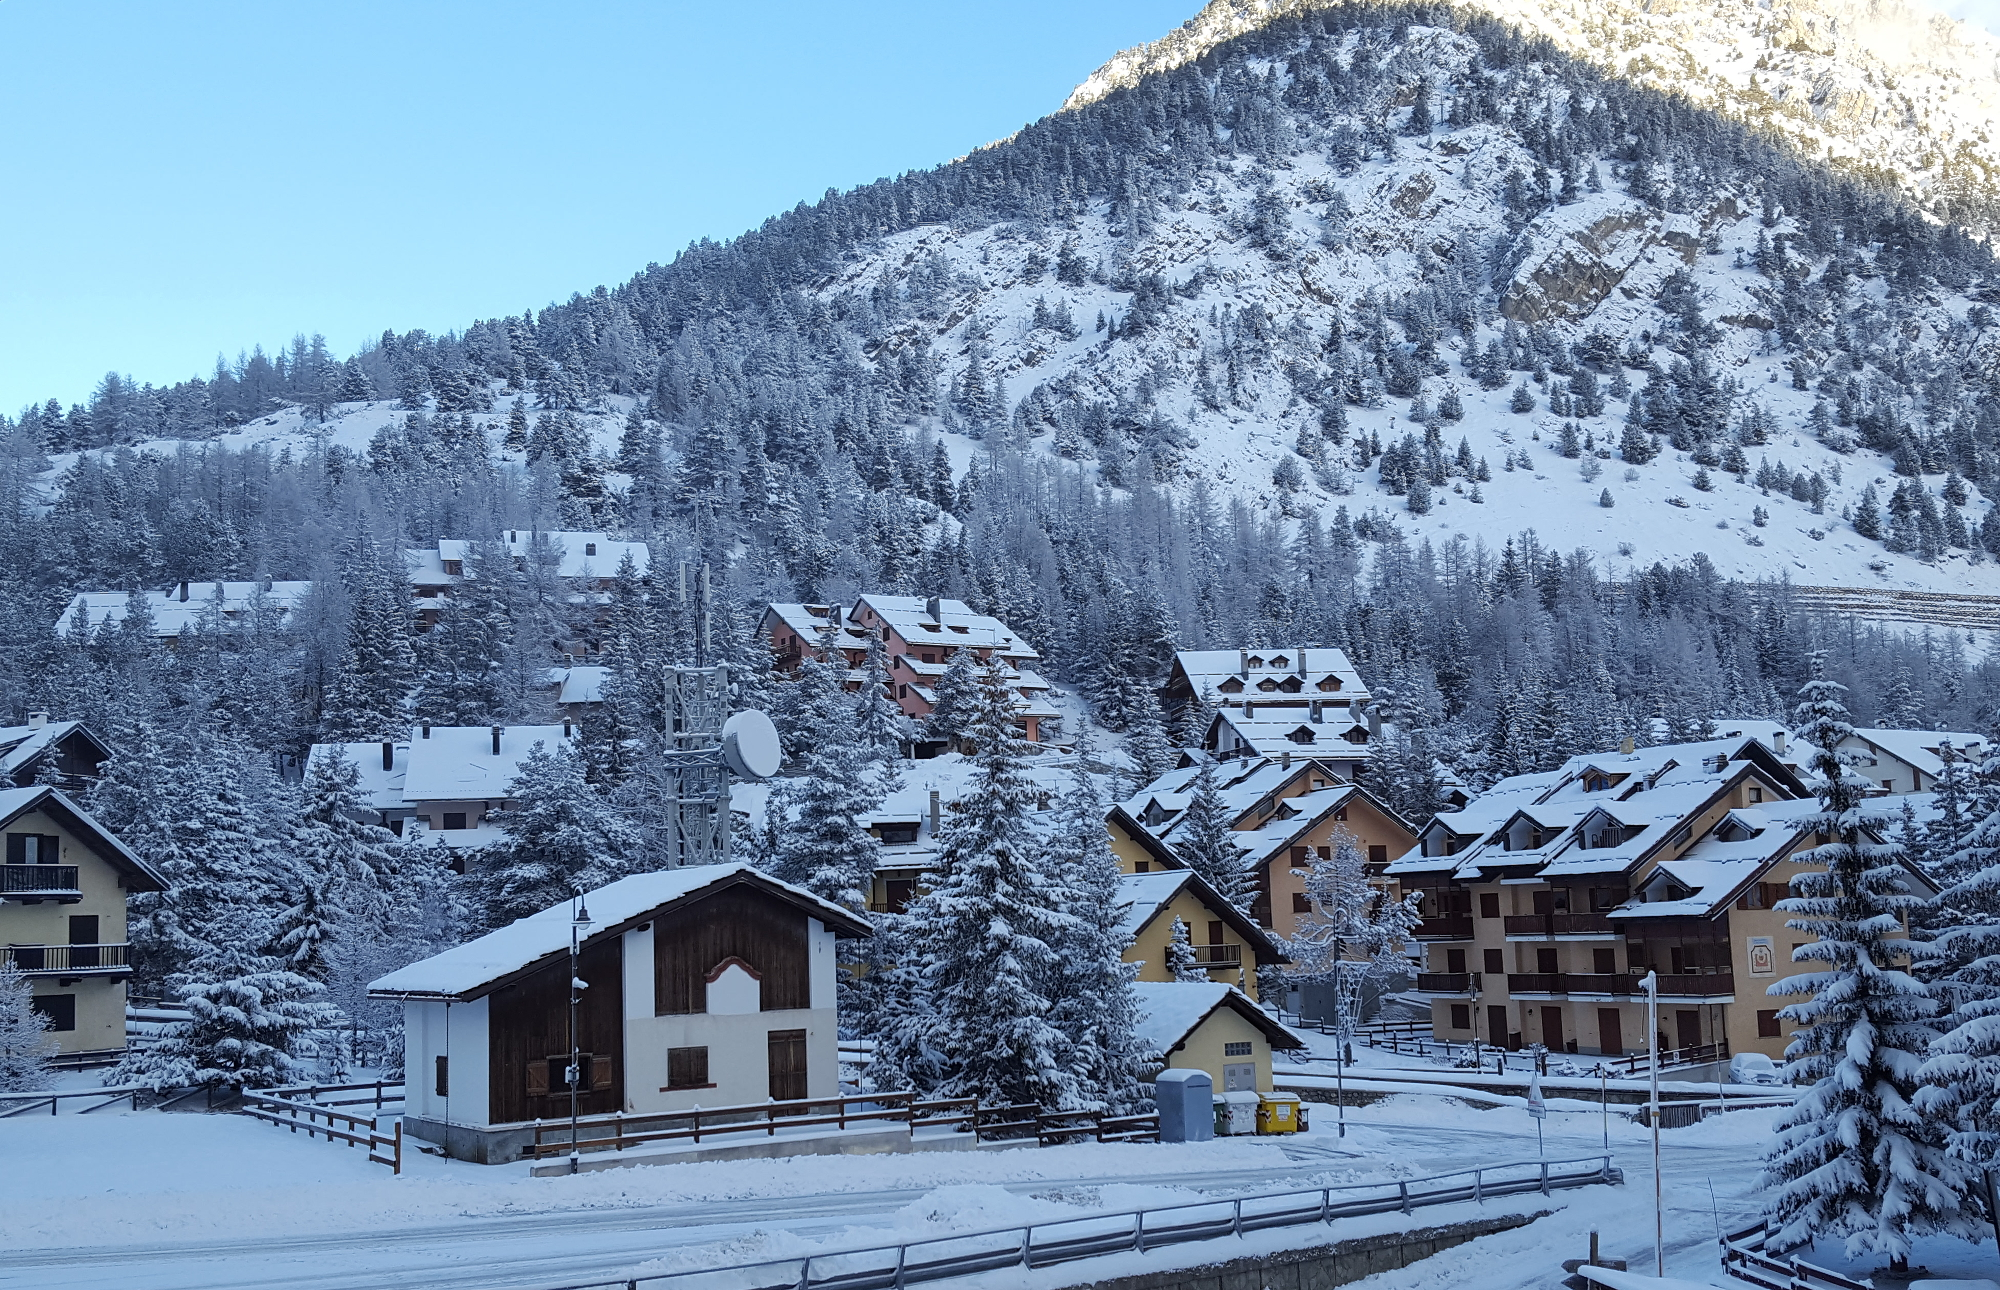 The small ski resort of Claviere in Piedmonte, Italy